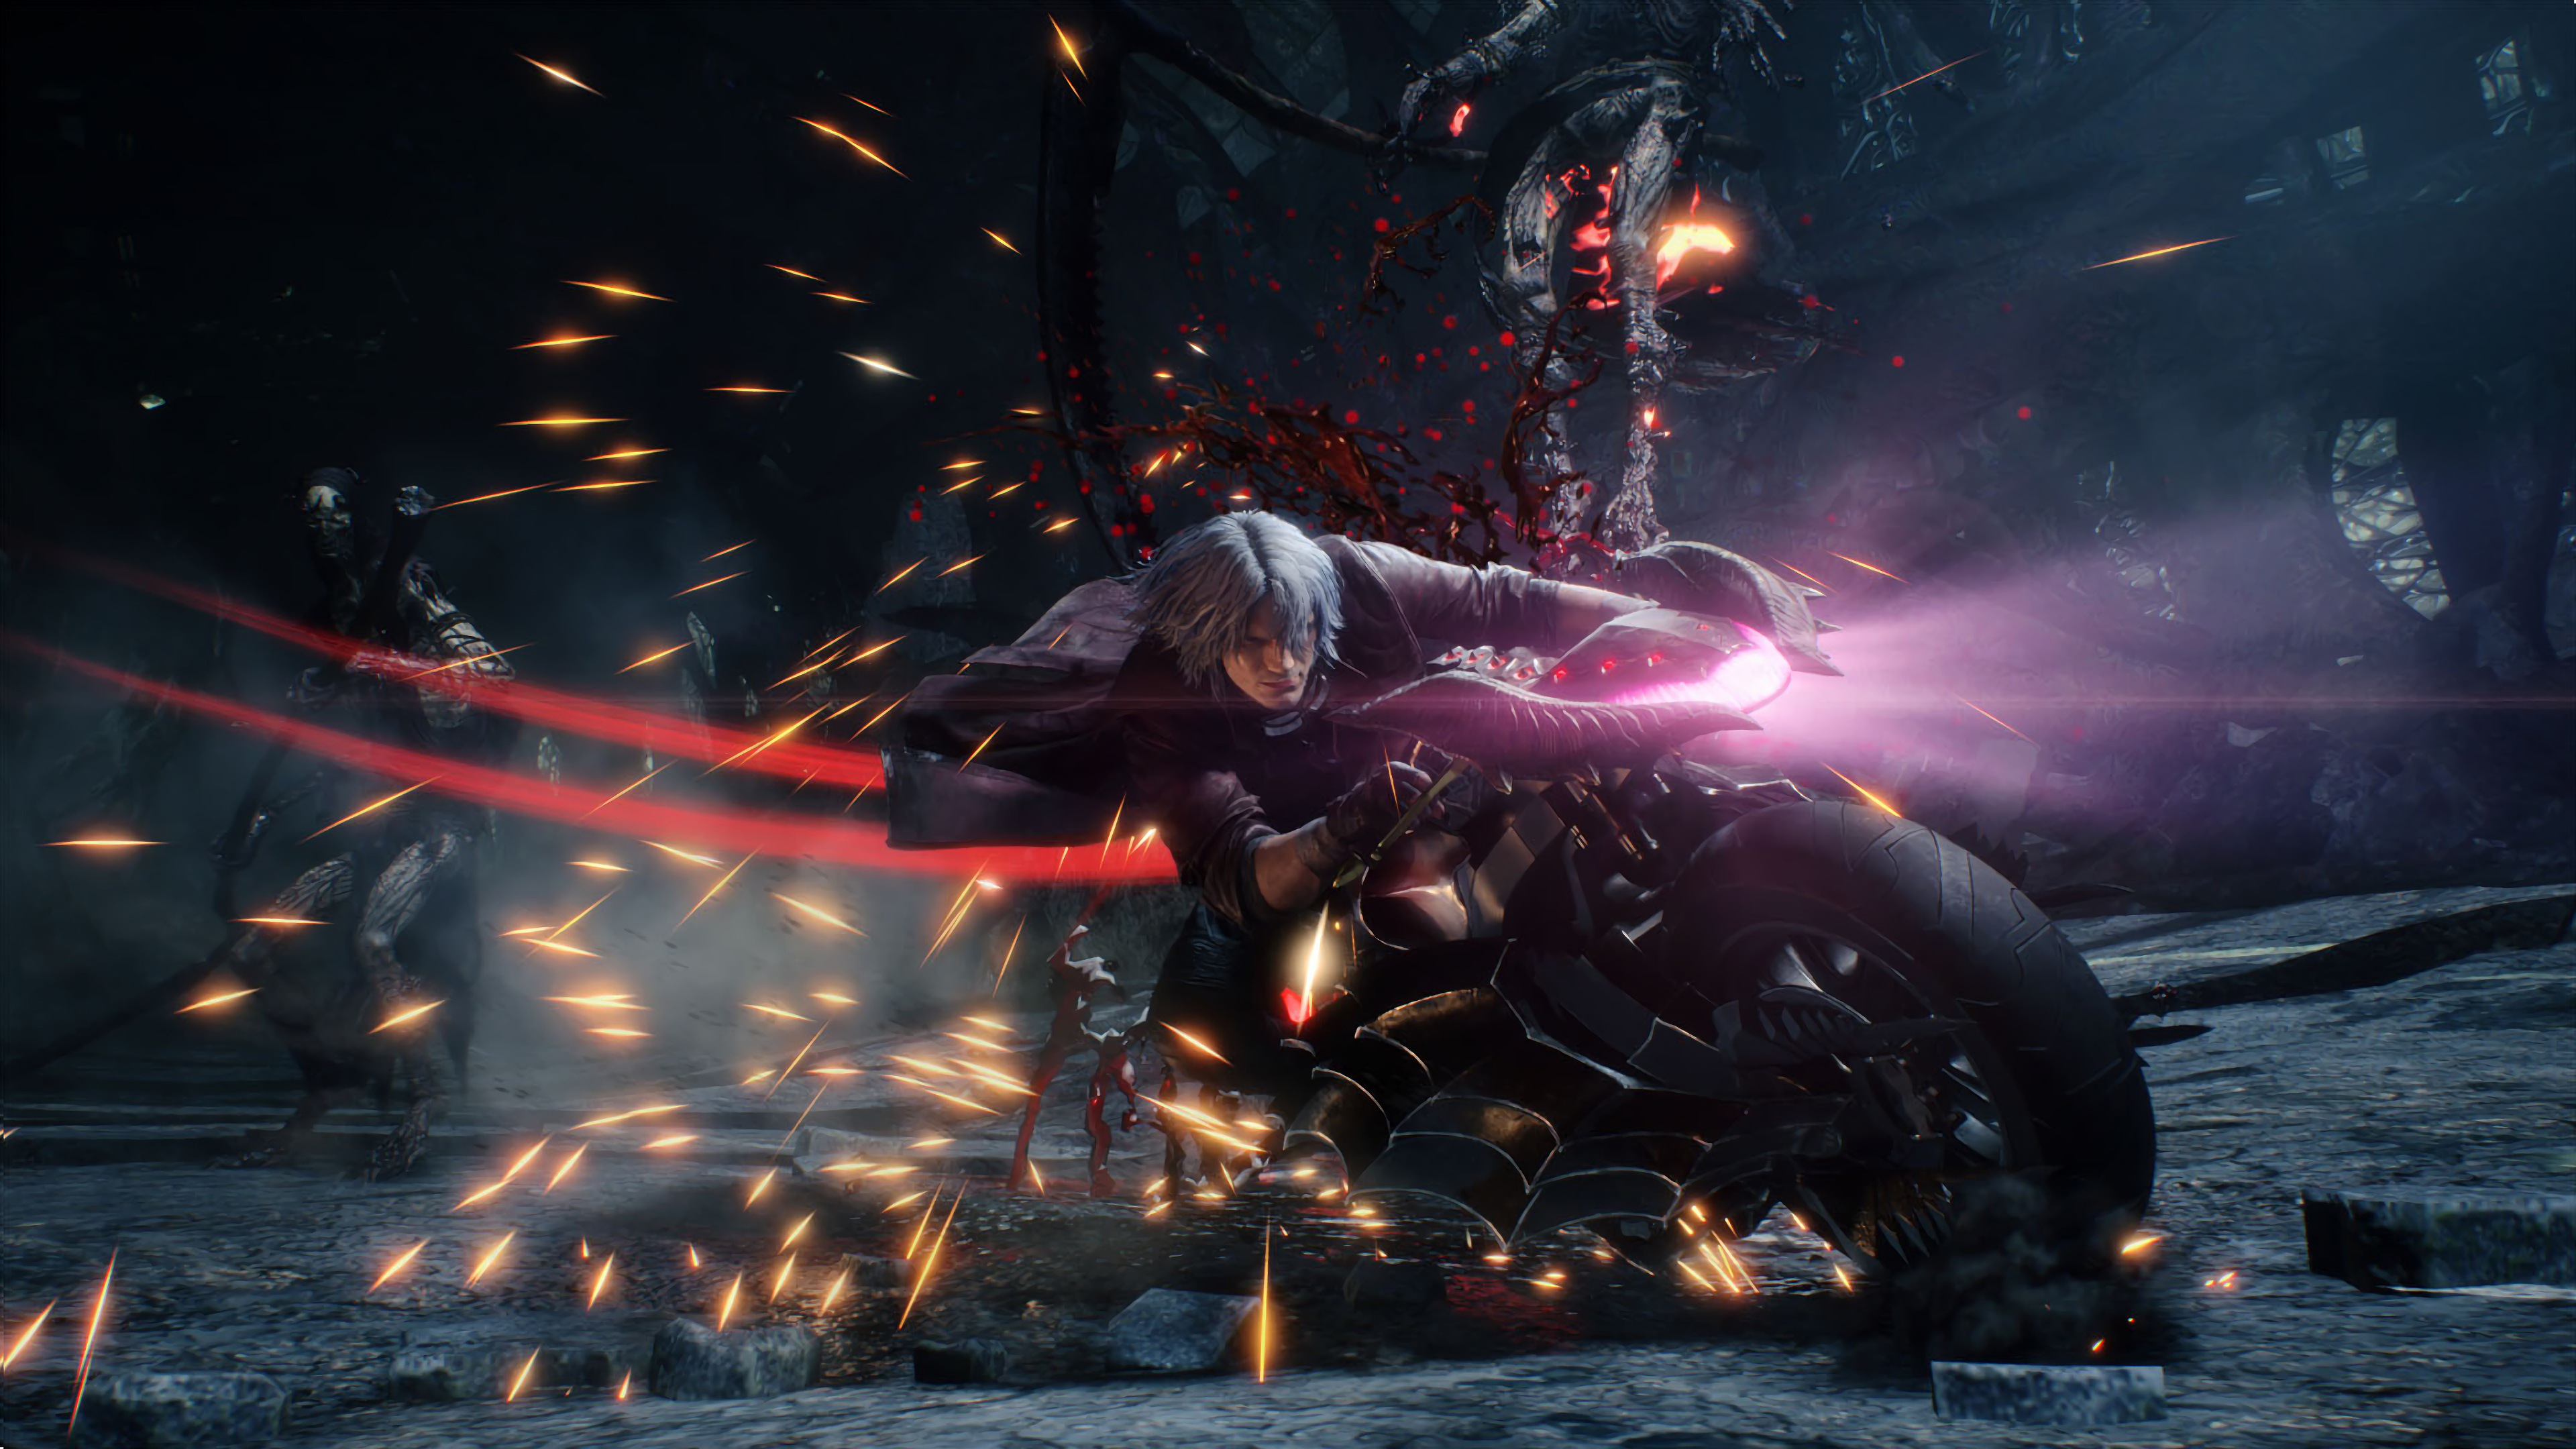 Dante Motorcycle Devil May Cry 5 Wallpaper 4k Ultra Hd Id4324